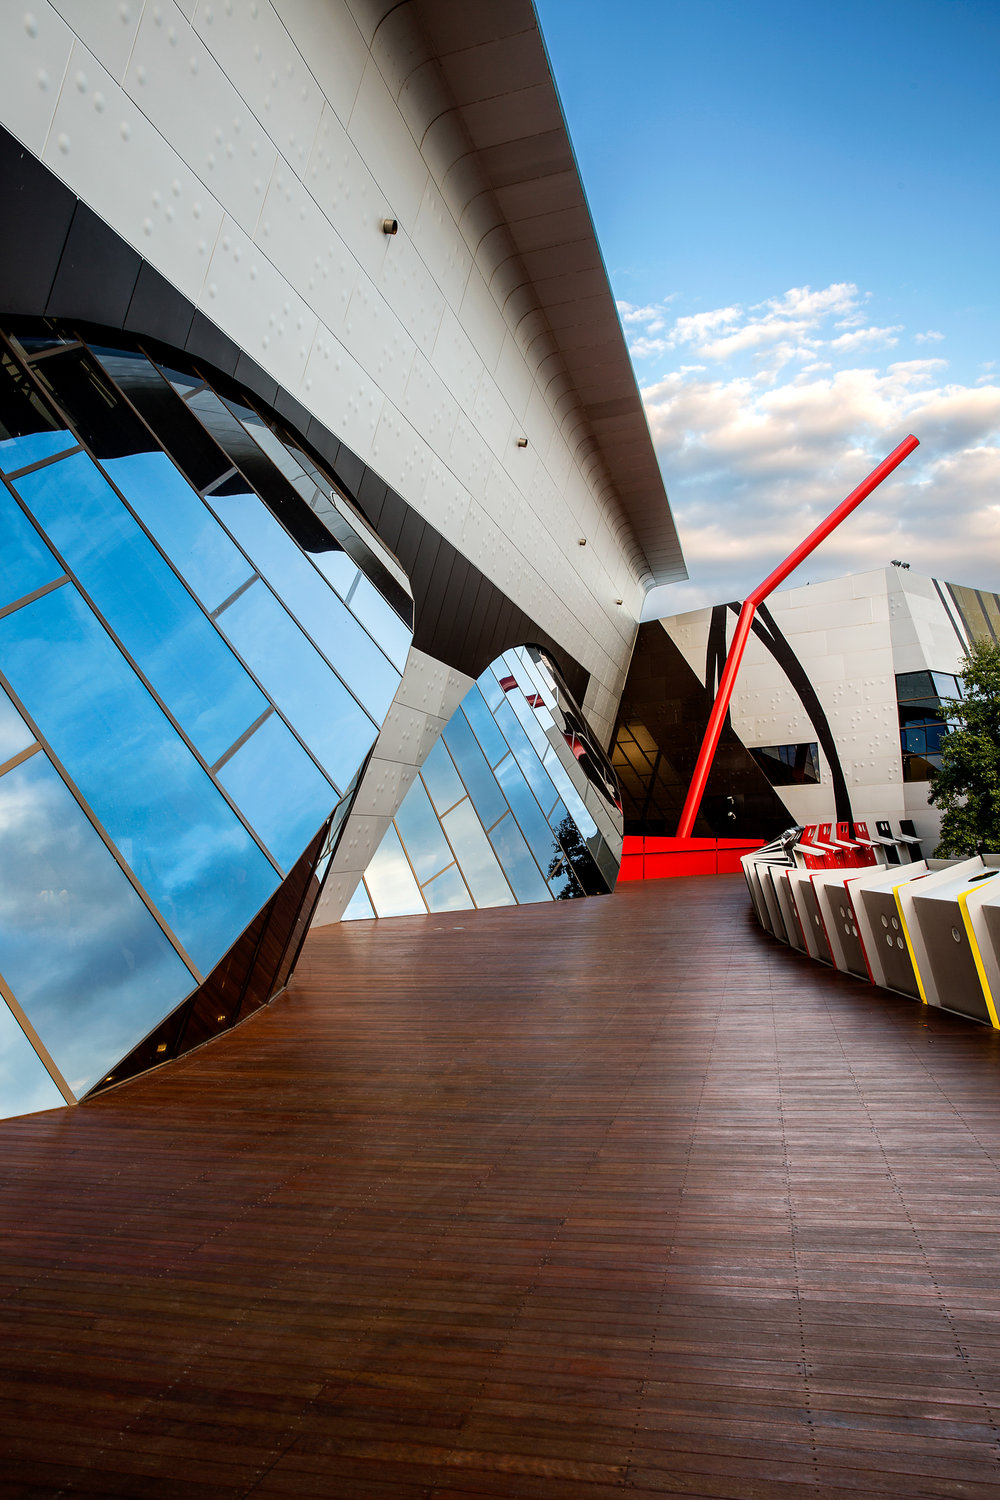 Architectural-photography-National-Museum-of-Australia.jpg